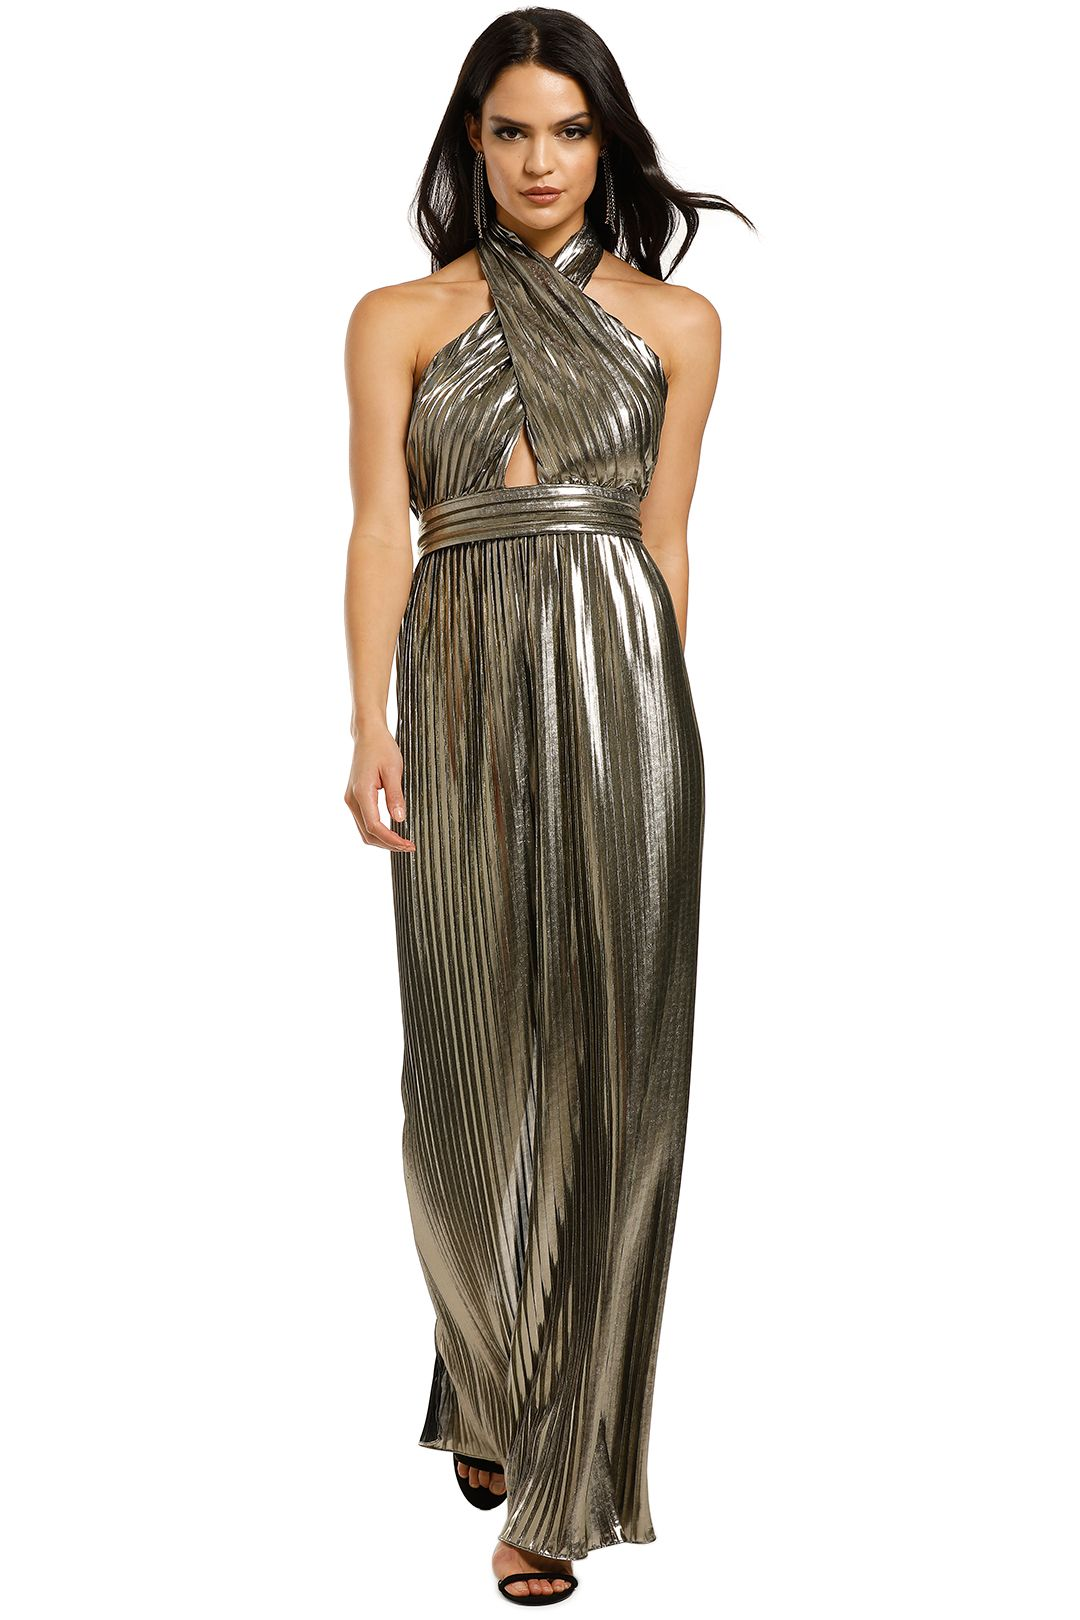 Carla-Zampatti-The-Monroe-Gold-Gown-Front